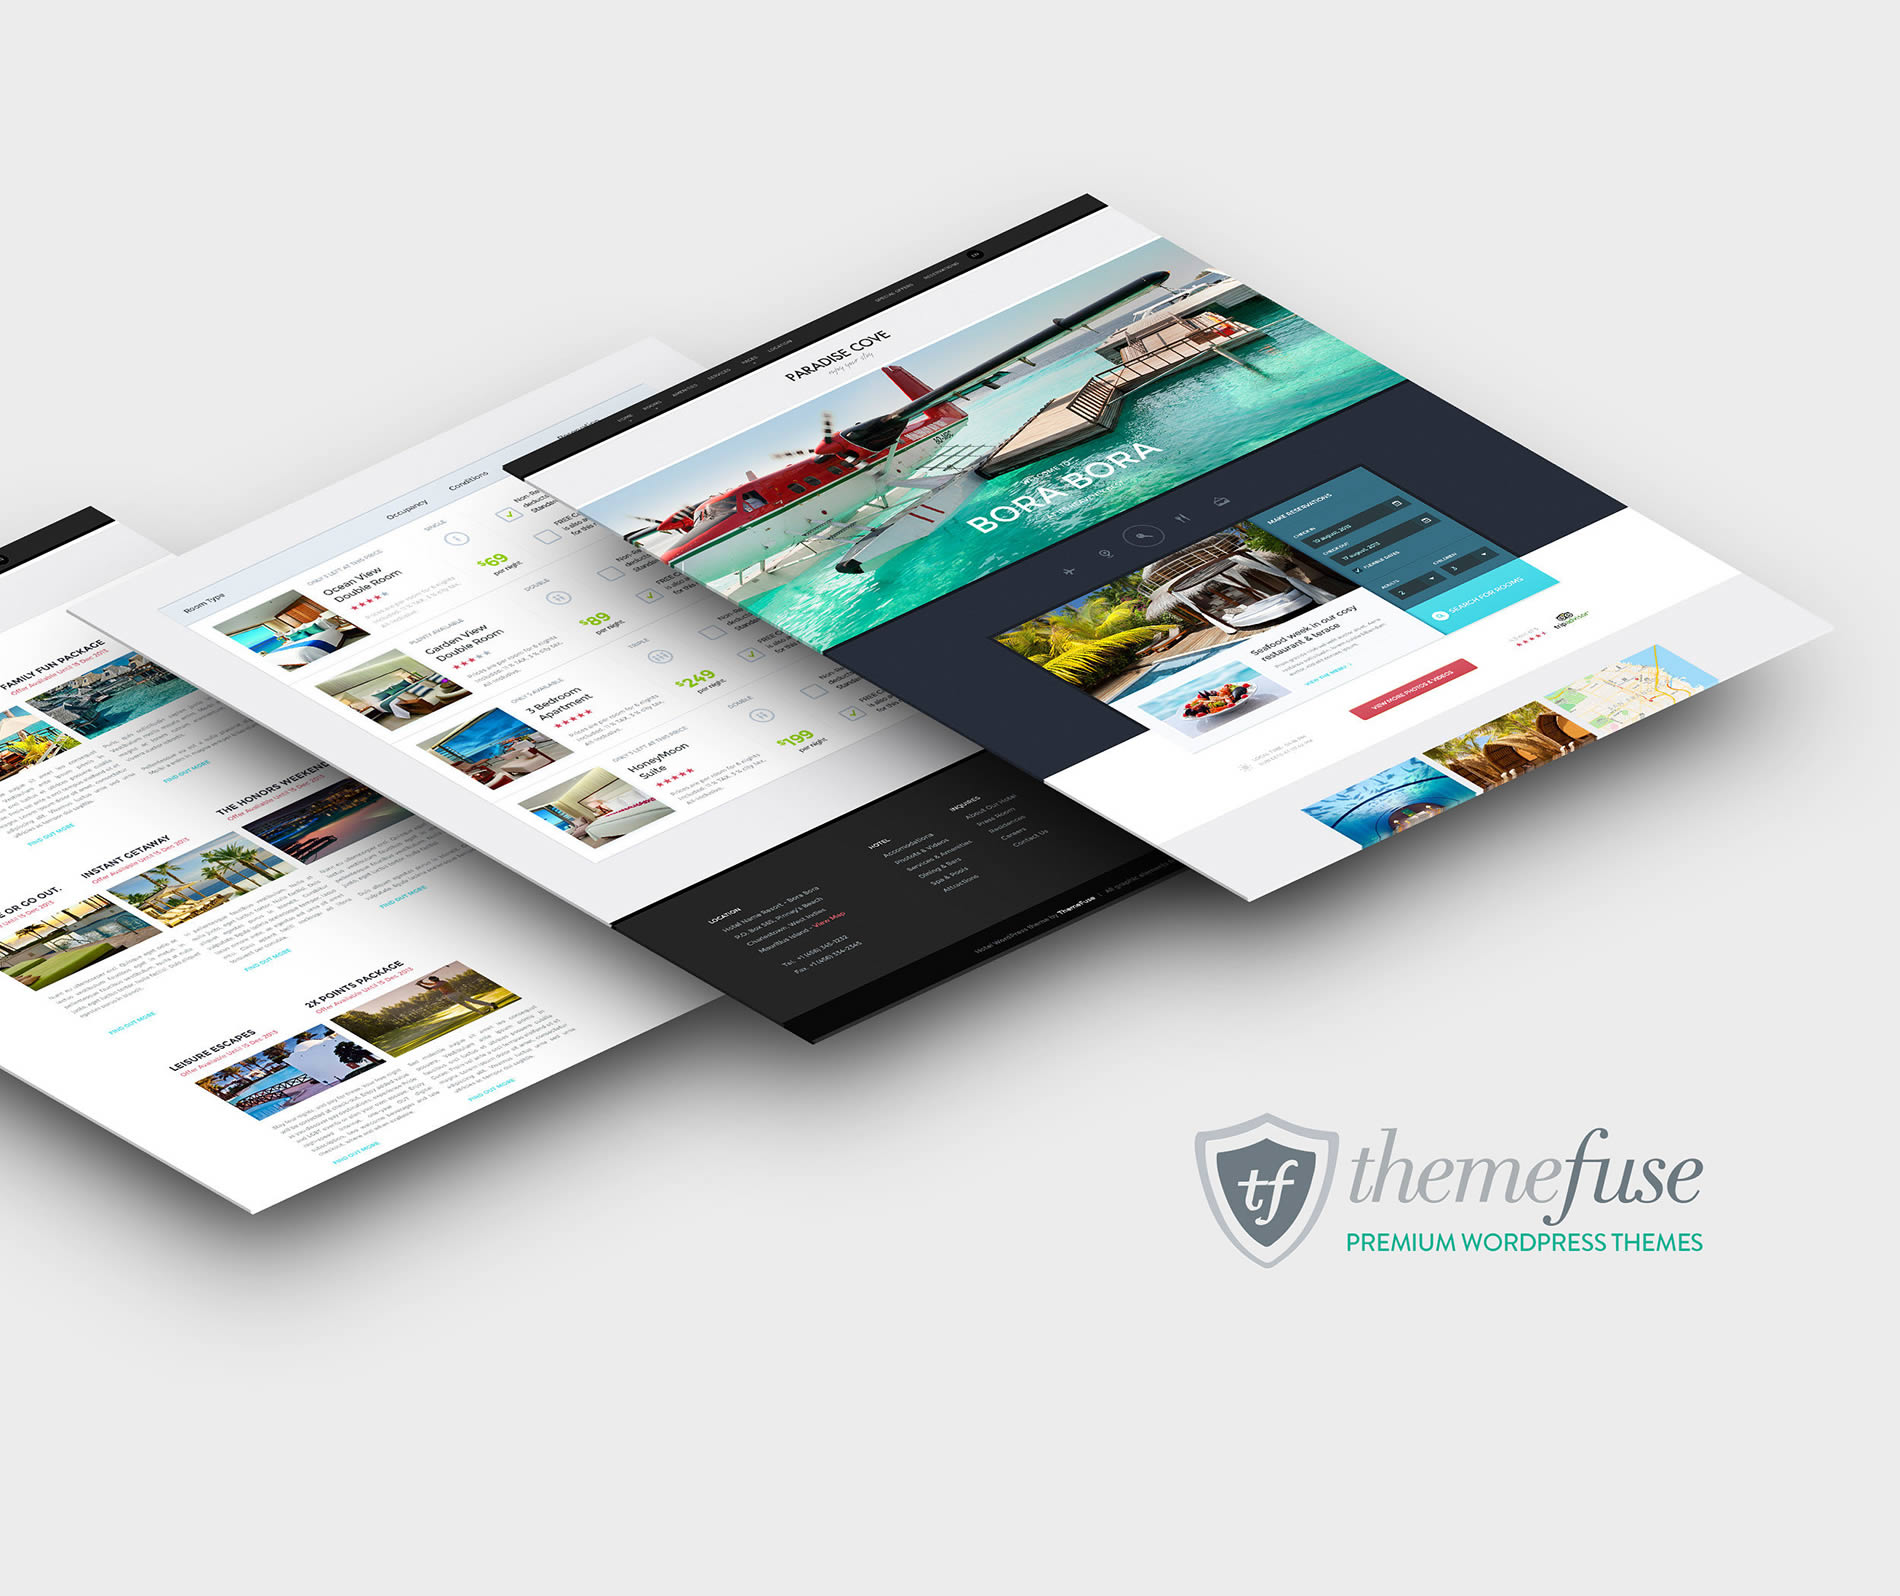 Giveaway: 1 Year of Hosting + Domain + ThemeFuse WP Theme